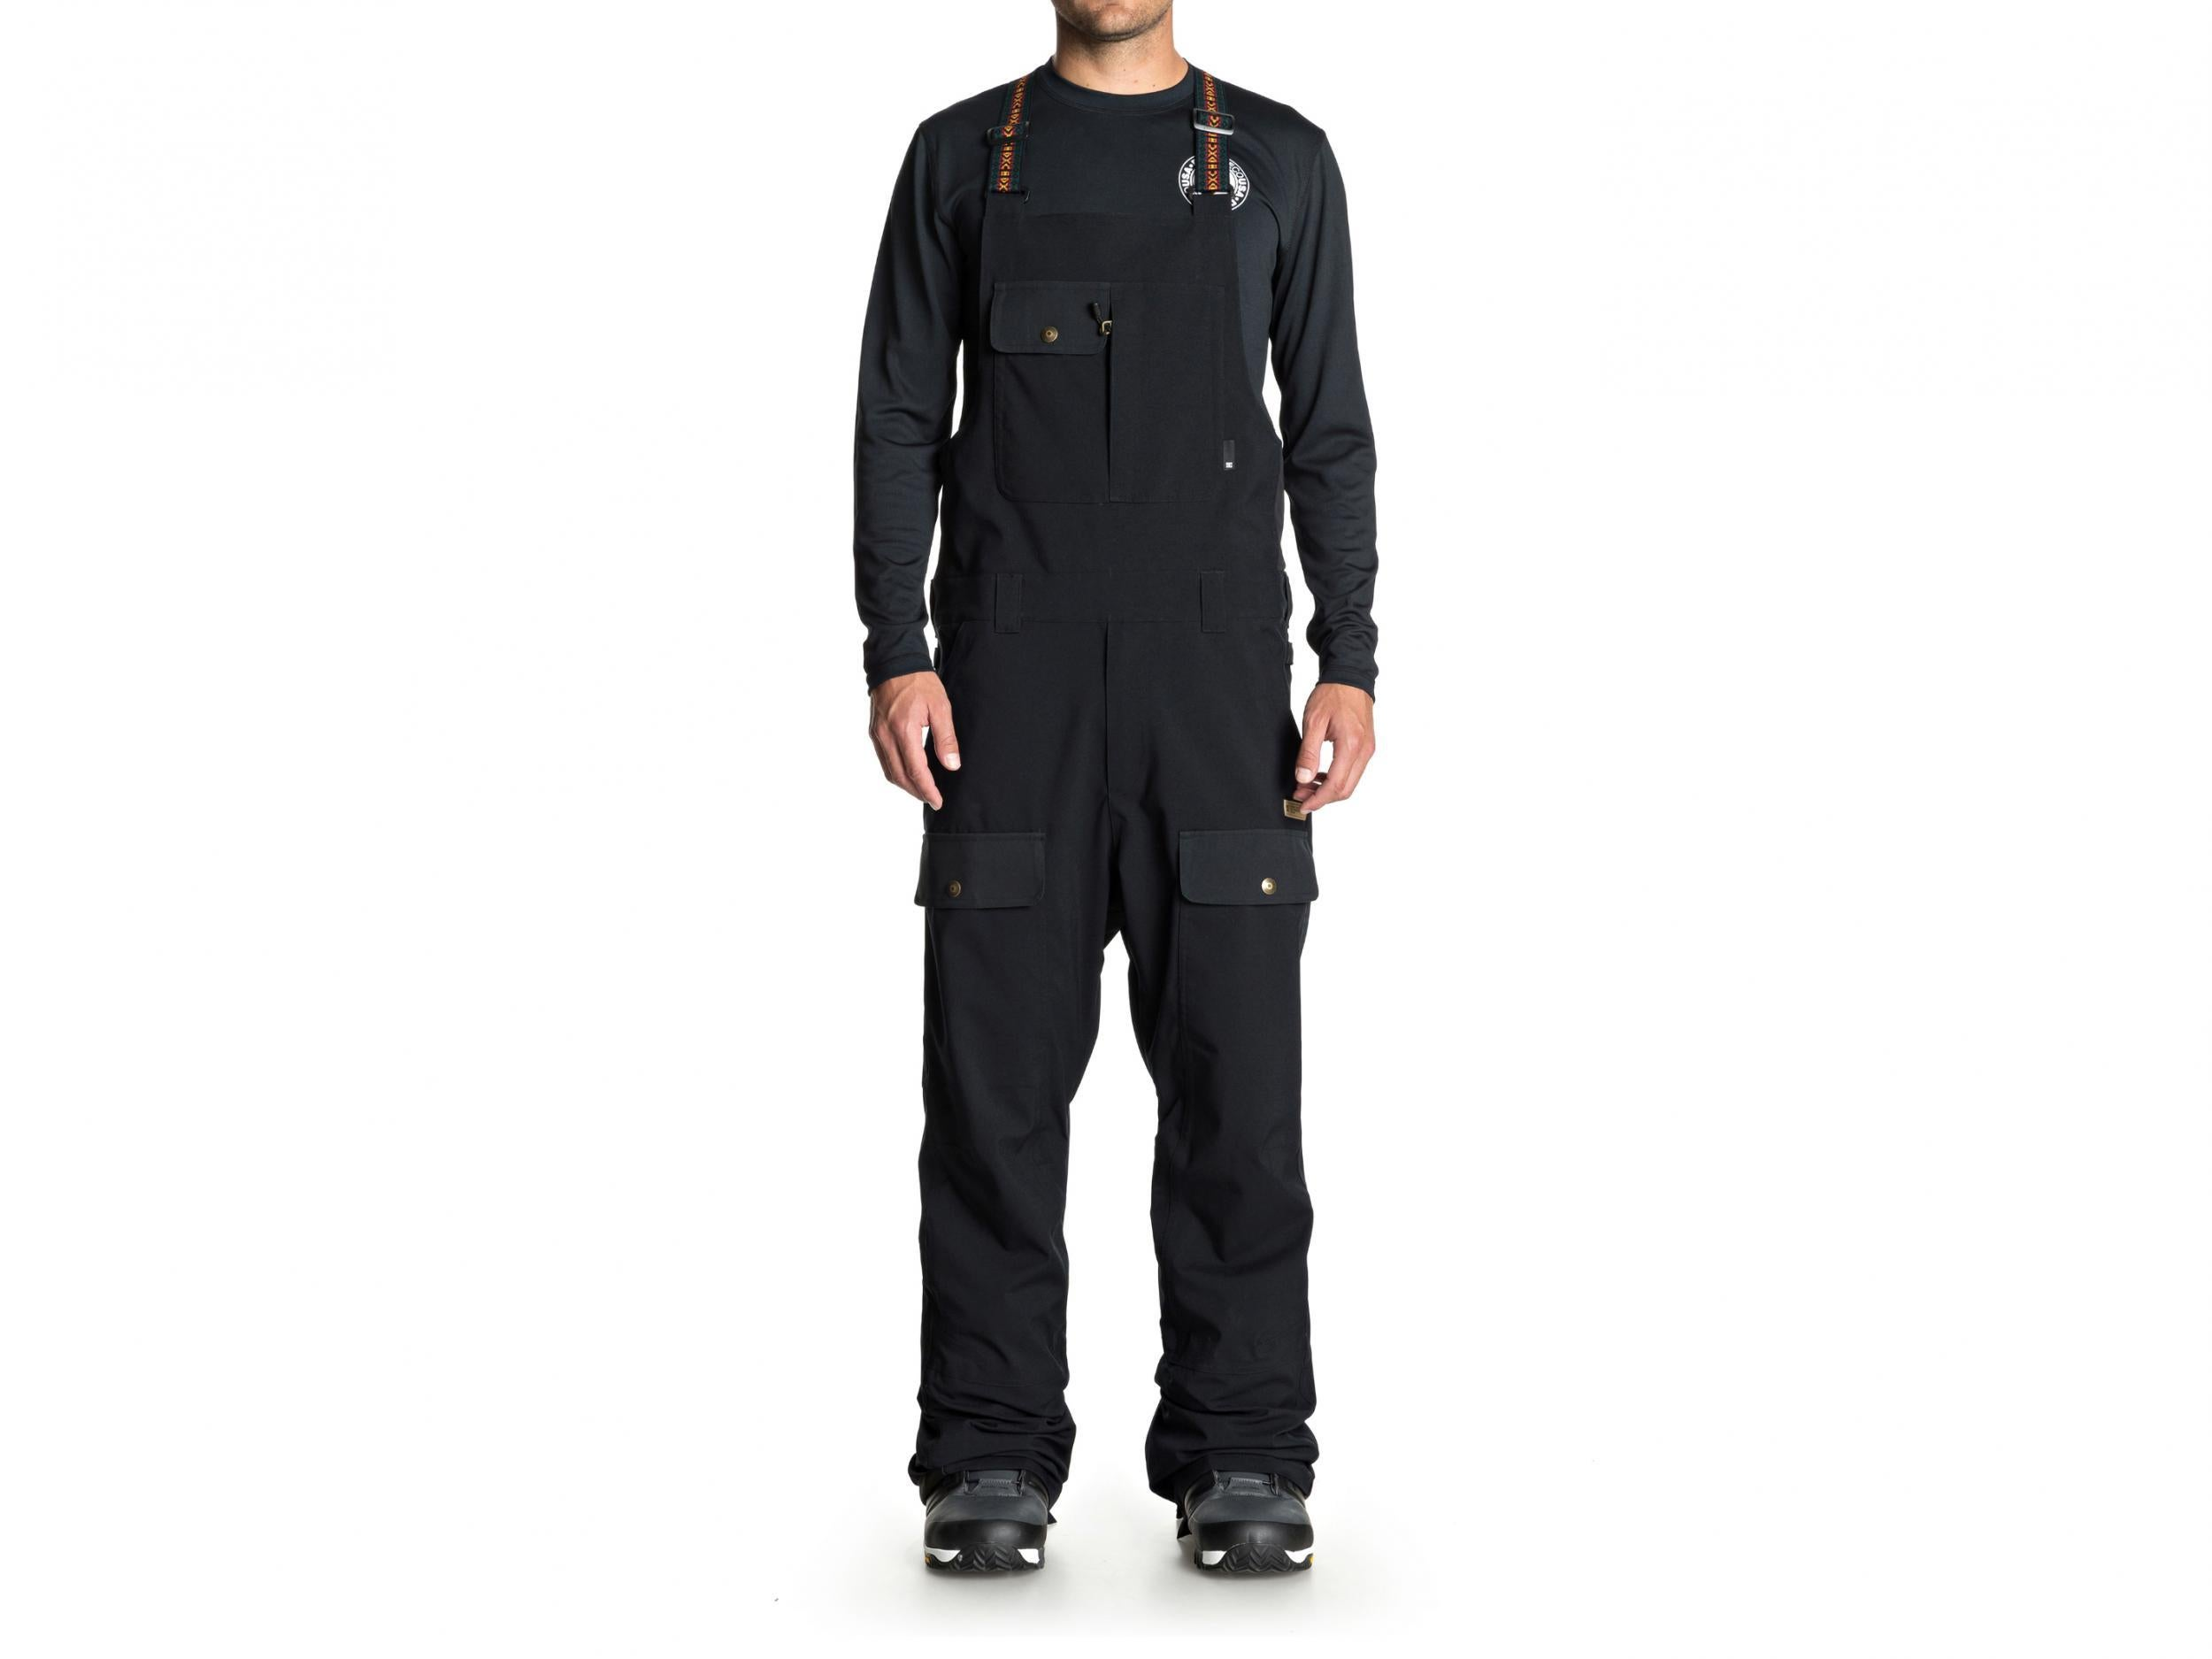 037198ff0a4 11 best men's ski and snowboard trousers 2018/2019 | The Independent